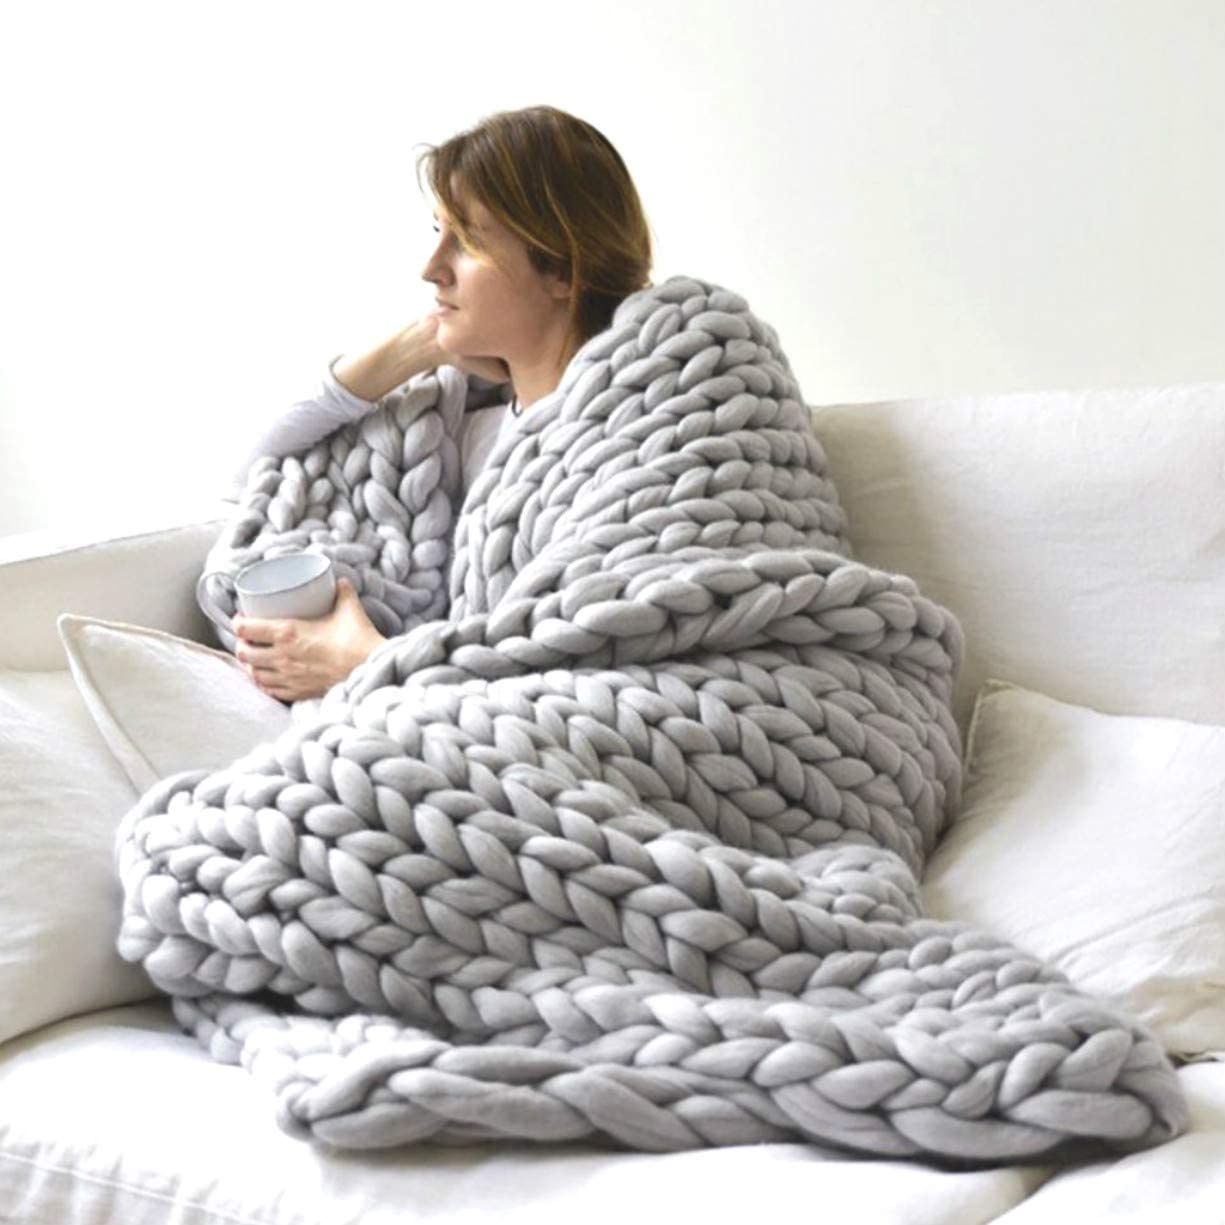 Chunky Knitted Throw Blankets, Hand Made Merino Wool Throw Boho Bedroom Sofa Home Decor Giant Yarn, Heavy Cozy Warm Giant Knit Blanket for Gift Sofa Bed